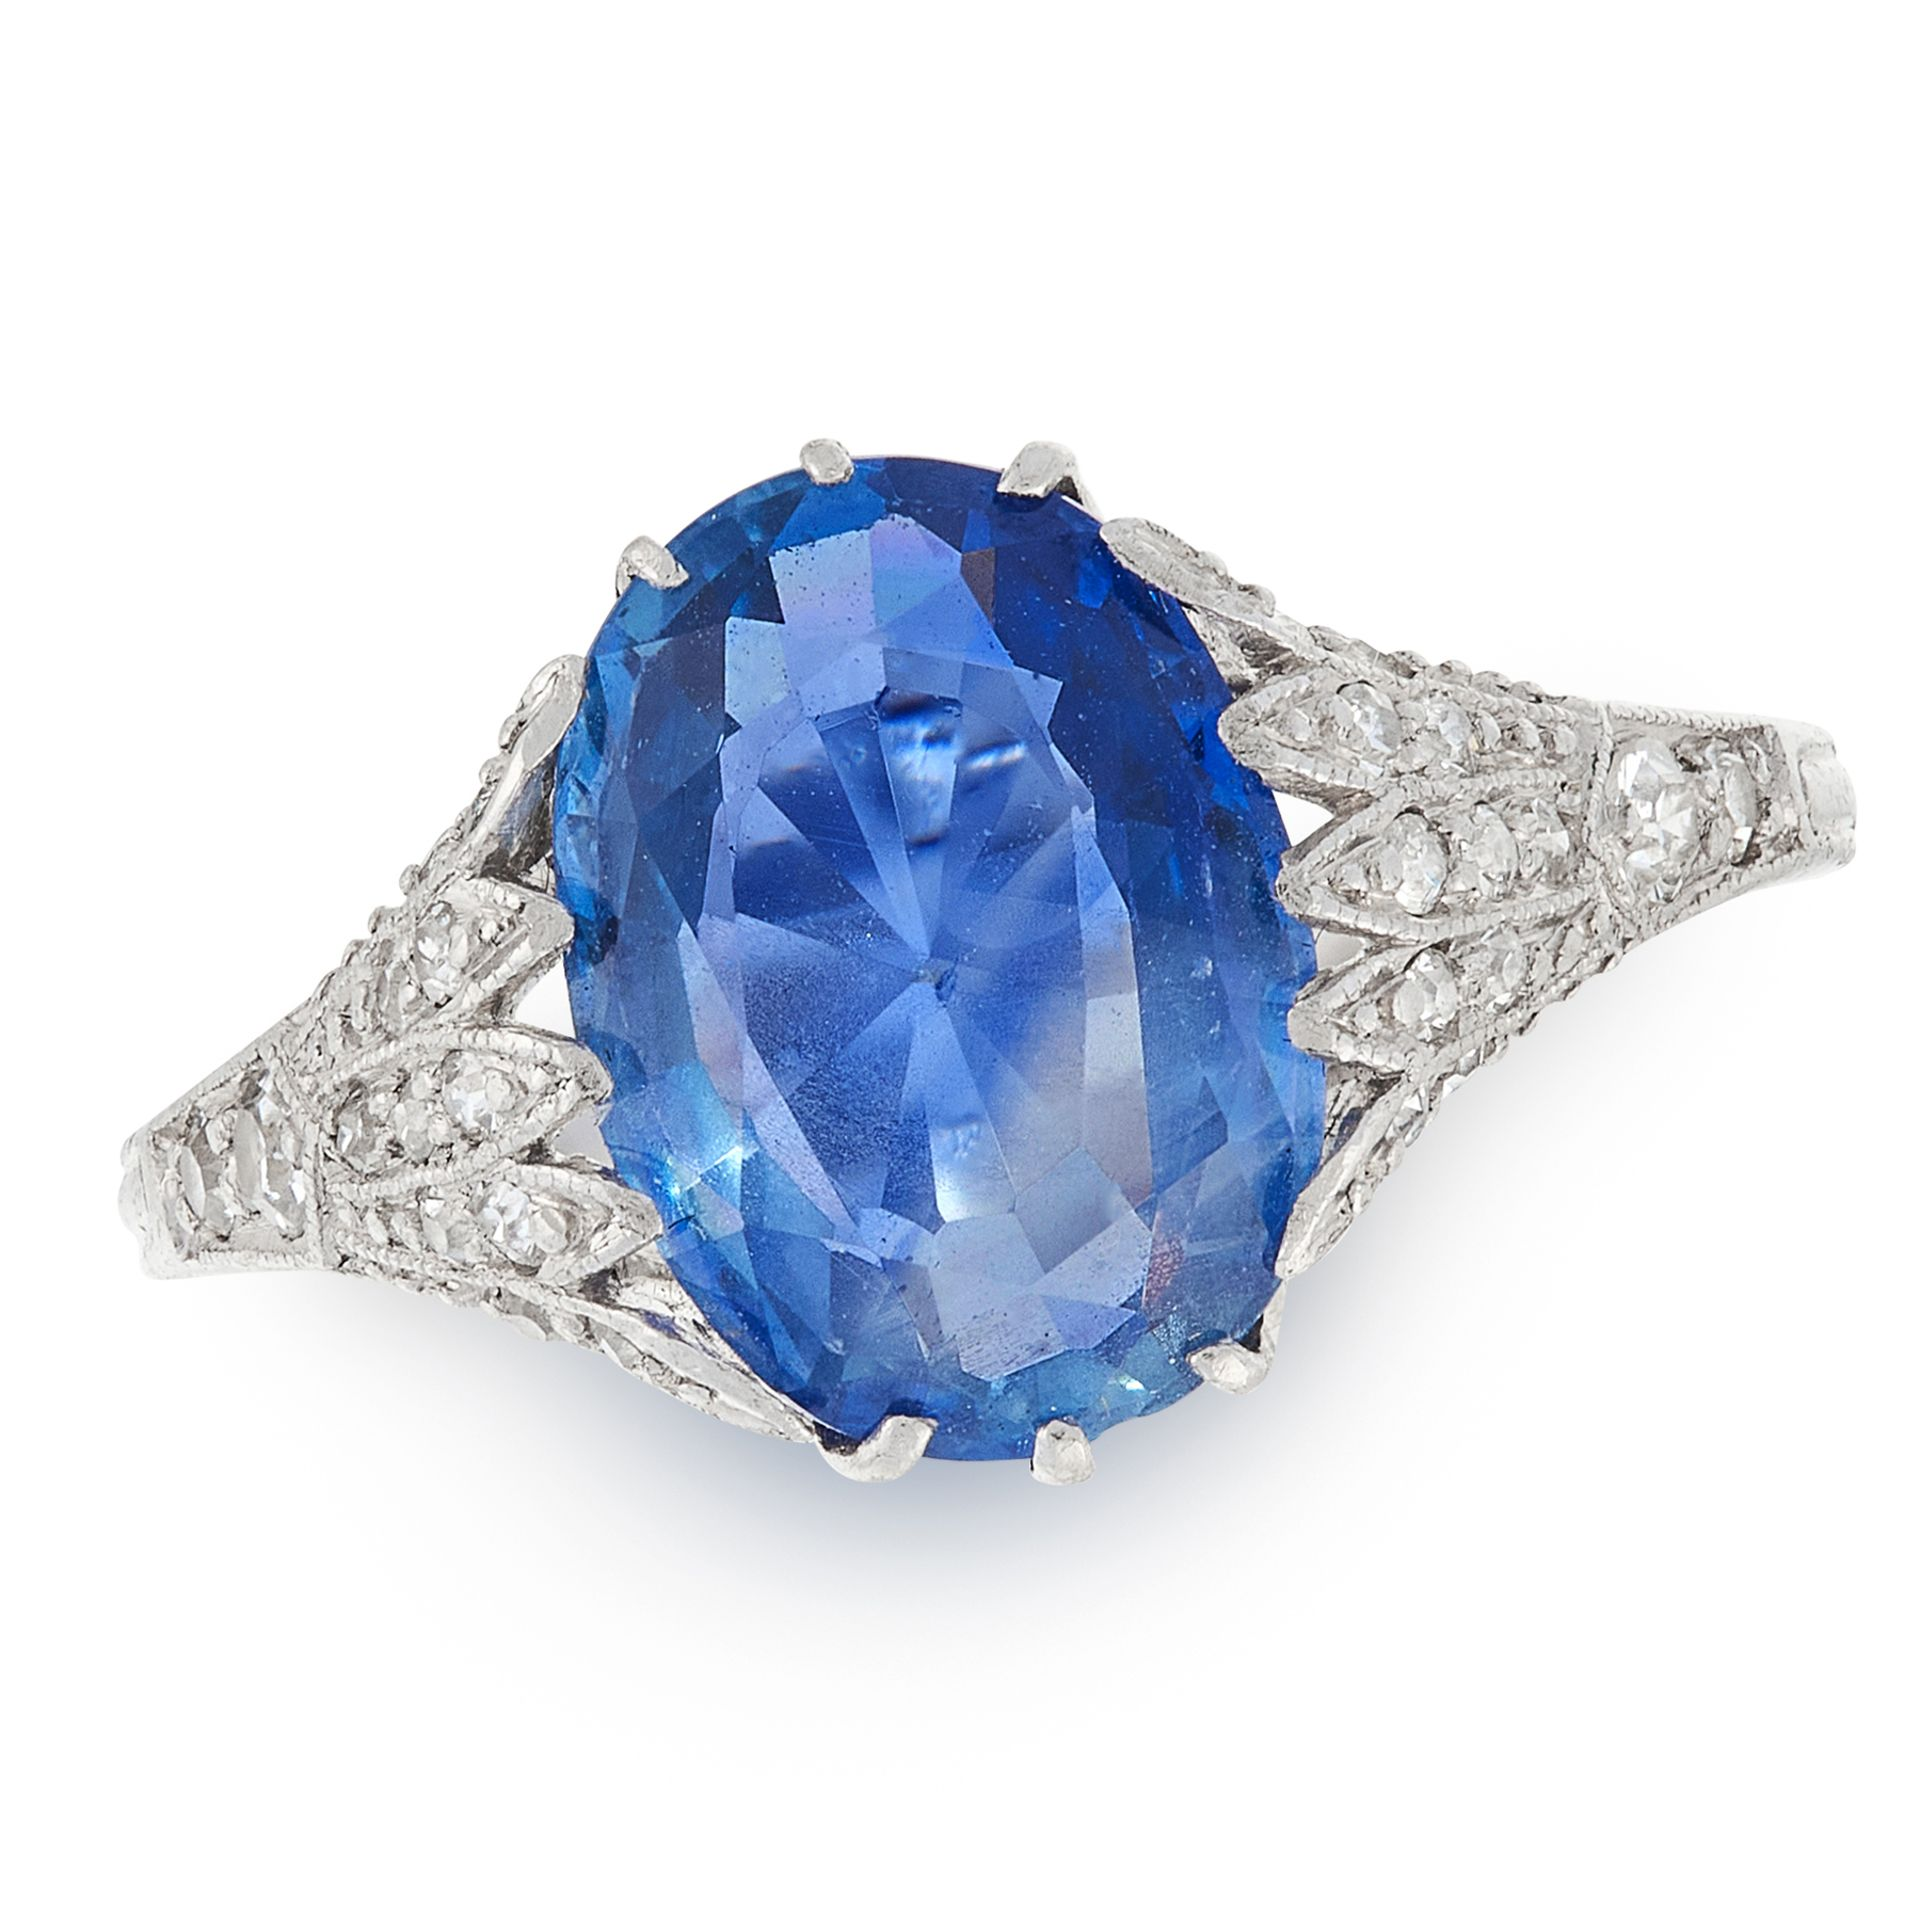 A SAPPHIRE AND DIAMOND DRESS RING in platinum, set with an oval cut sapphire of 3.51 carats accented